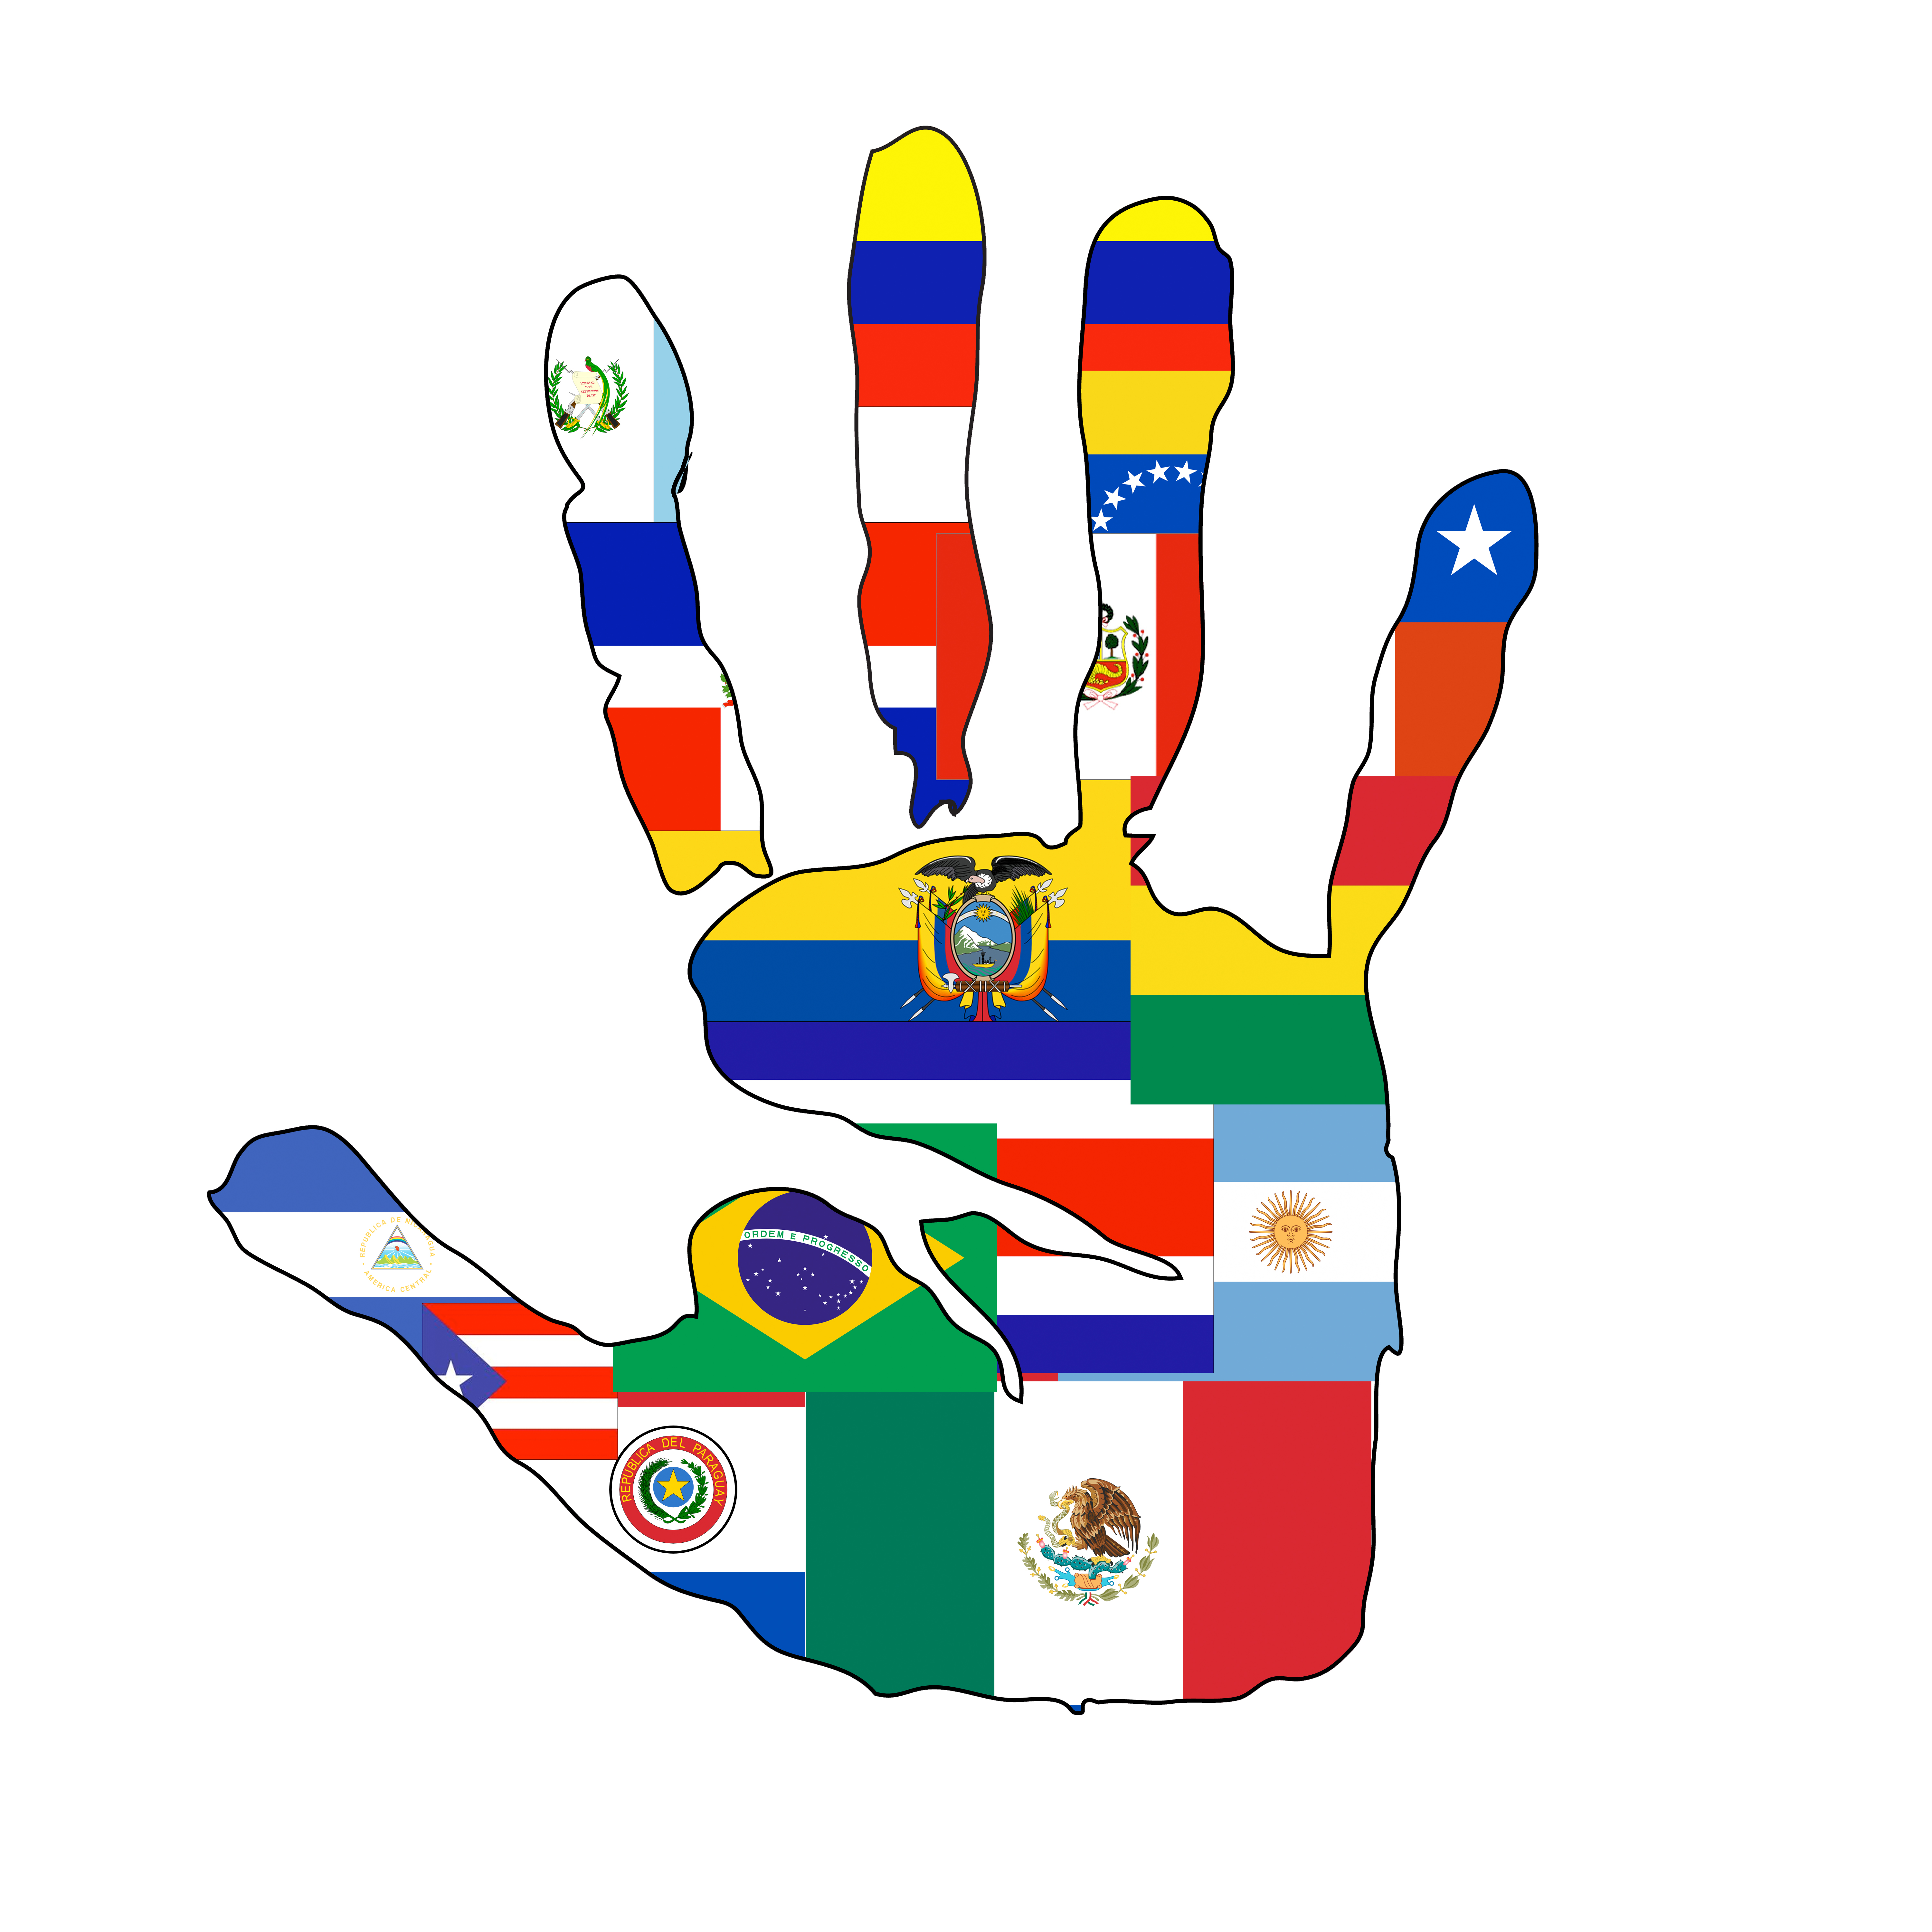 World with latinos clipart image black and white Free Hispanic Food Pictures, Download Free Clip Art, Free ... image black and white